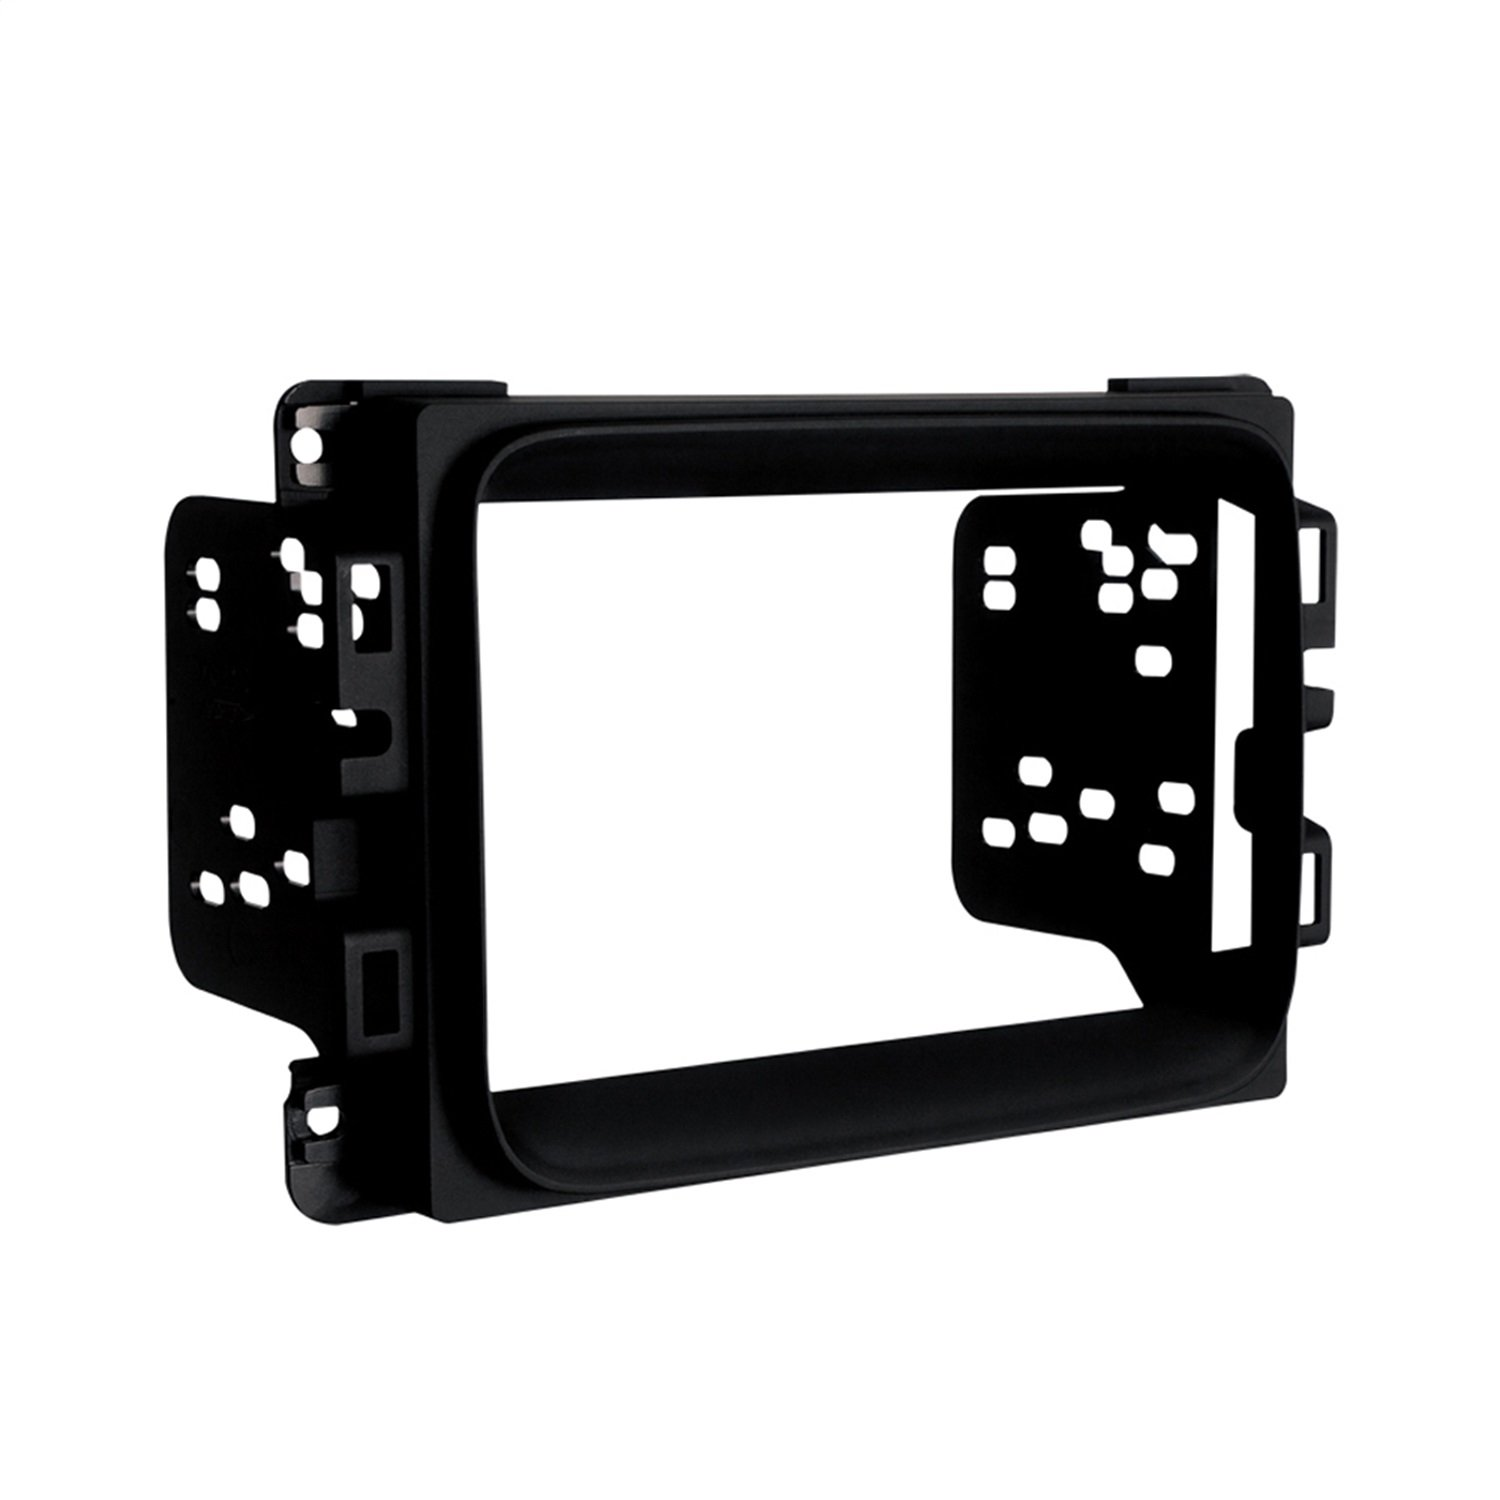 Metra 95-6518B Double Din Installation Kit for 2013-Up Ram 1500/2500/3500